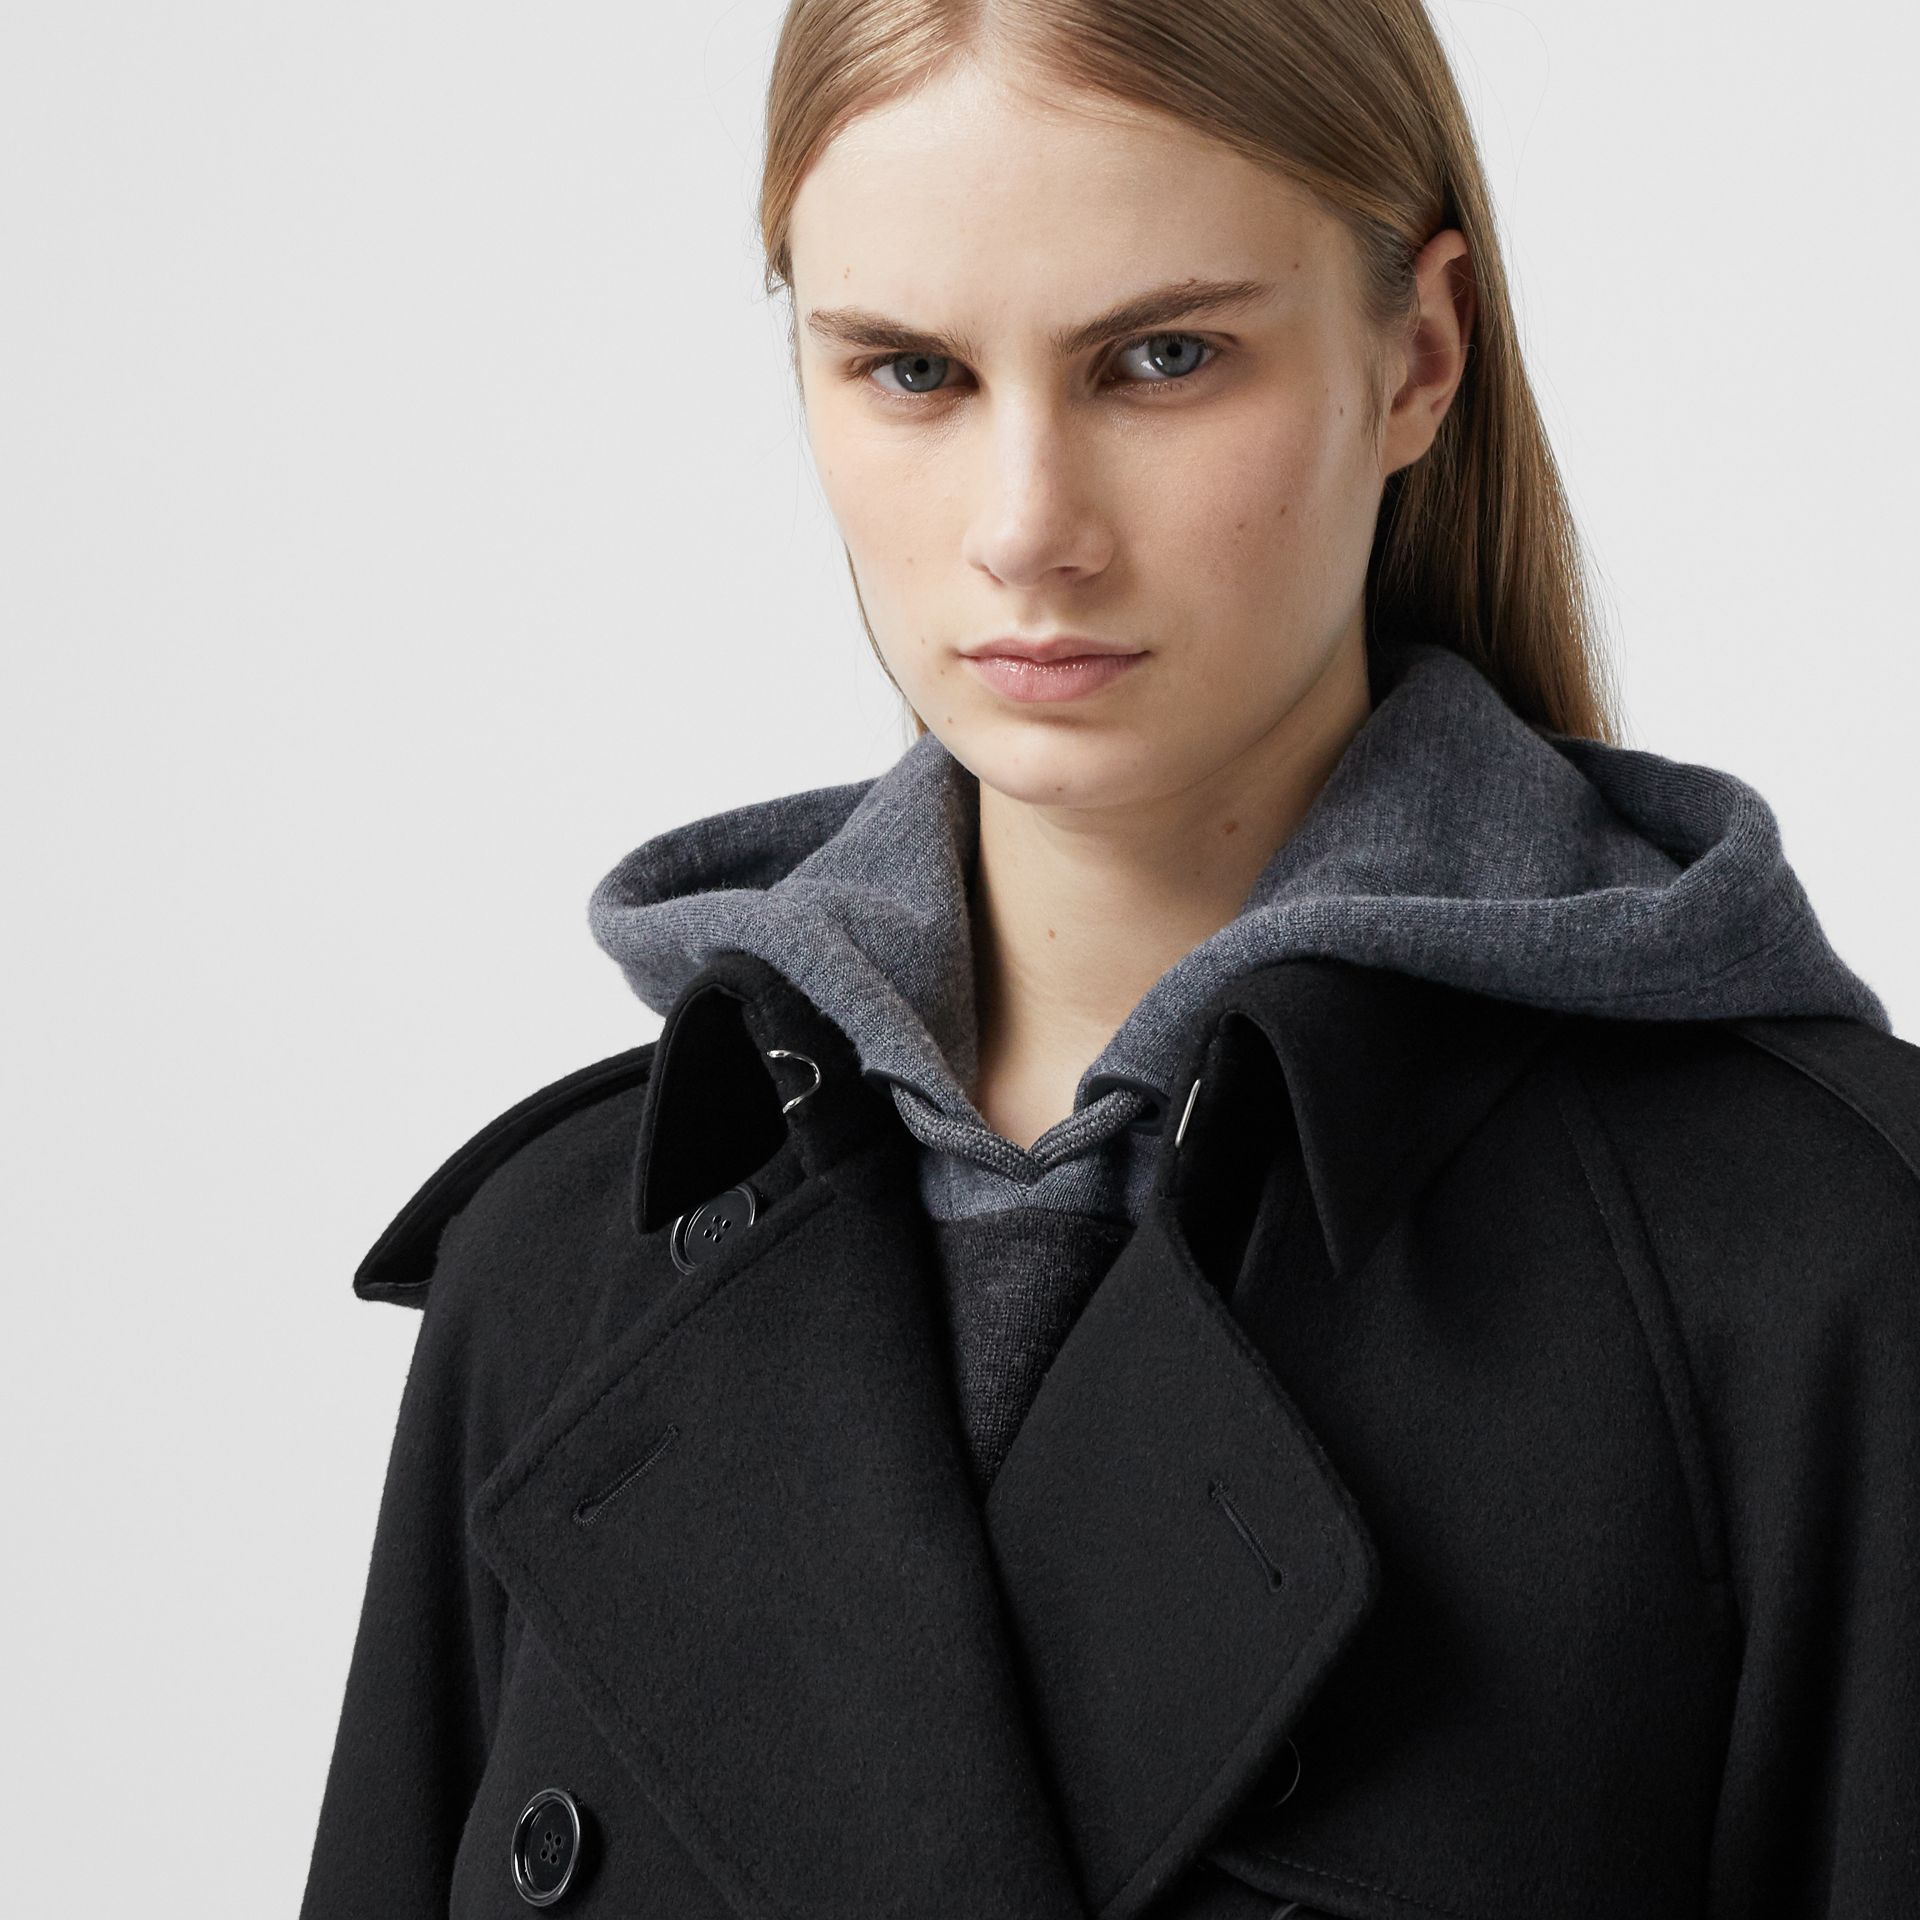 Fringed Wool Cashmere Trench Coat in Black - Women | Burberry - gallery image 4